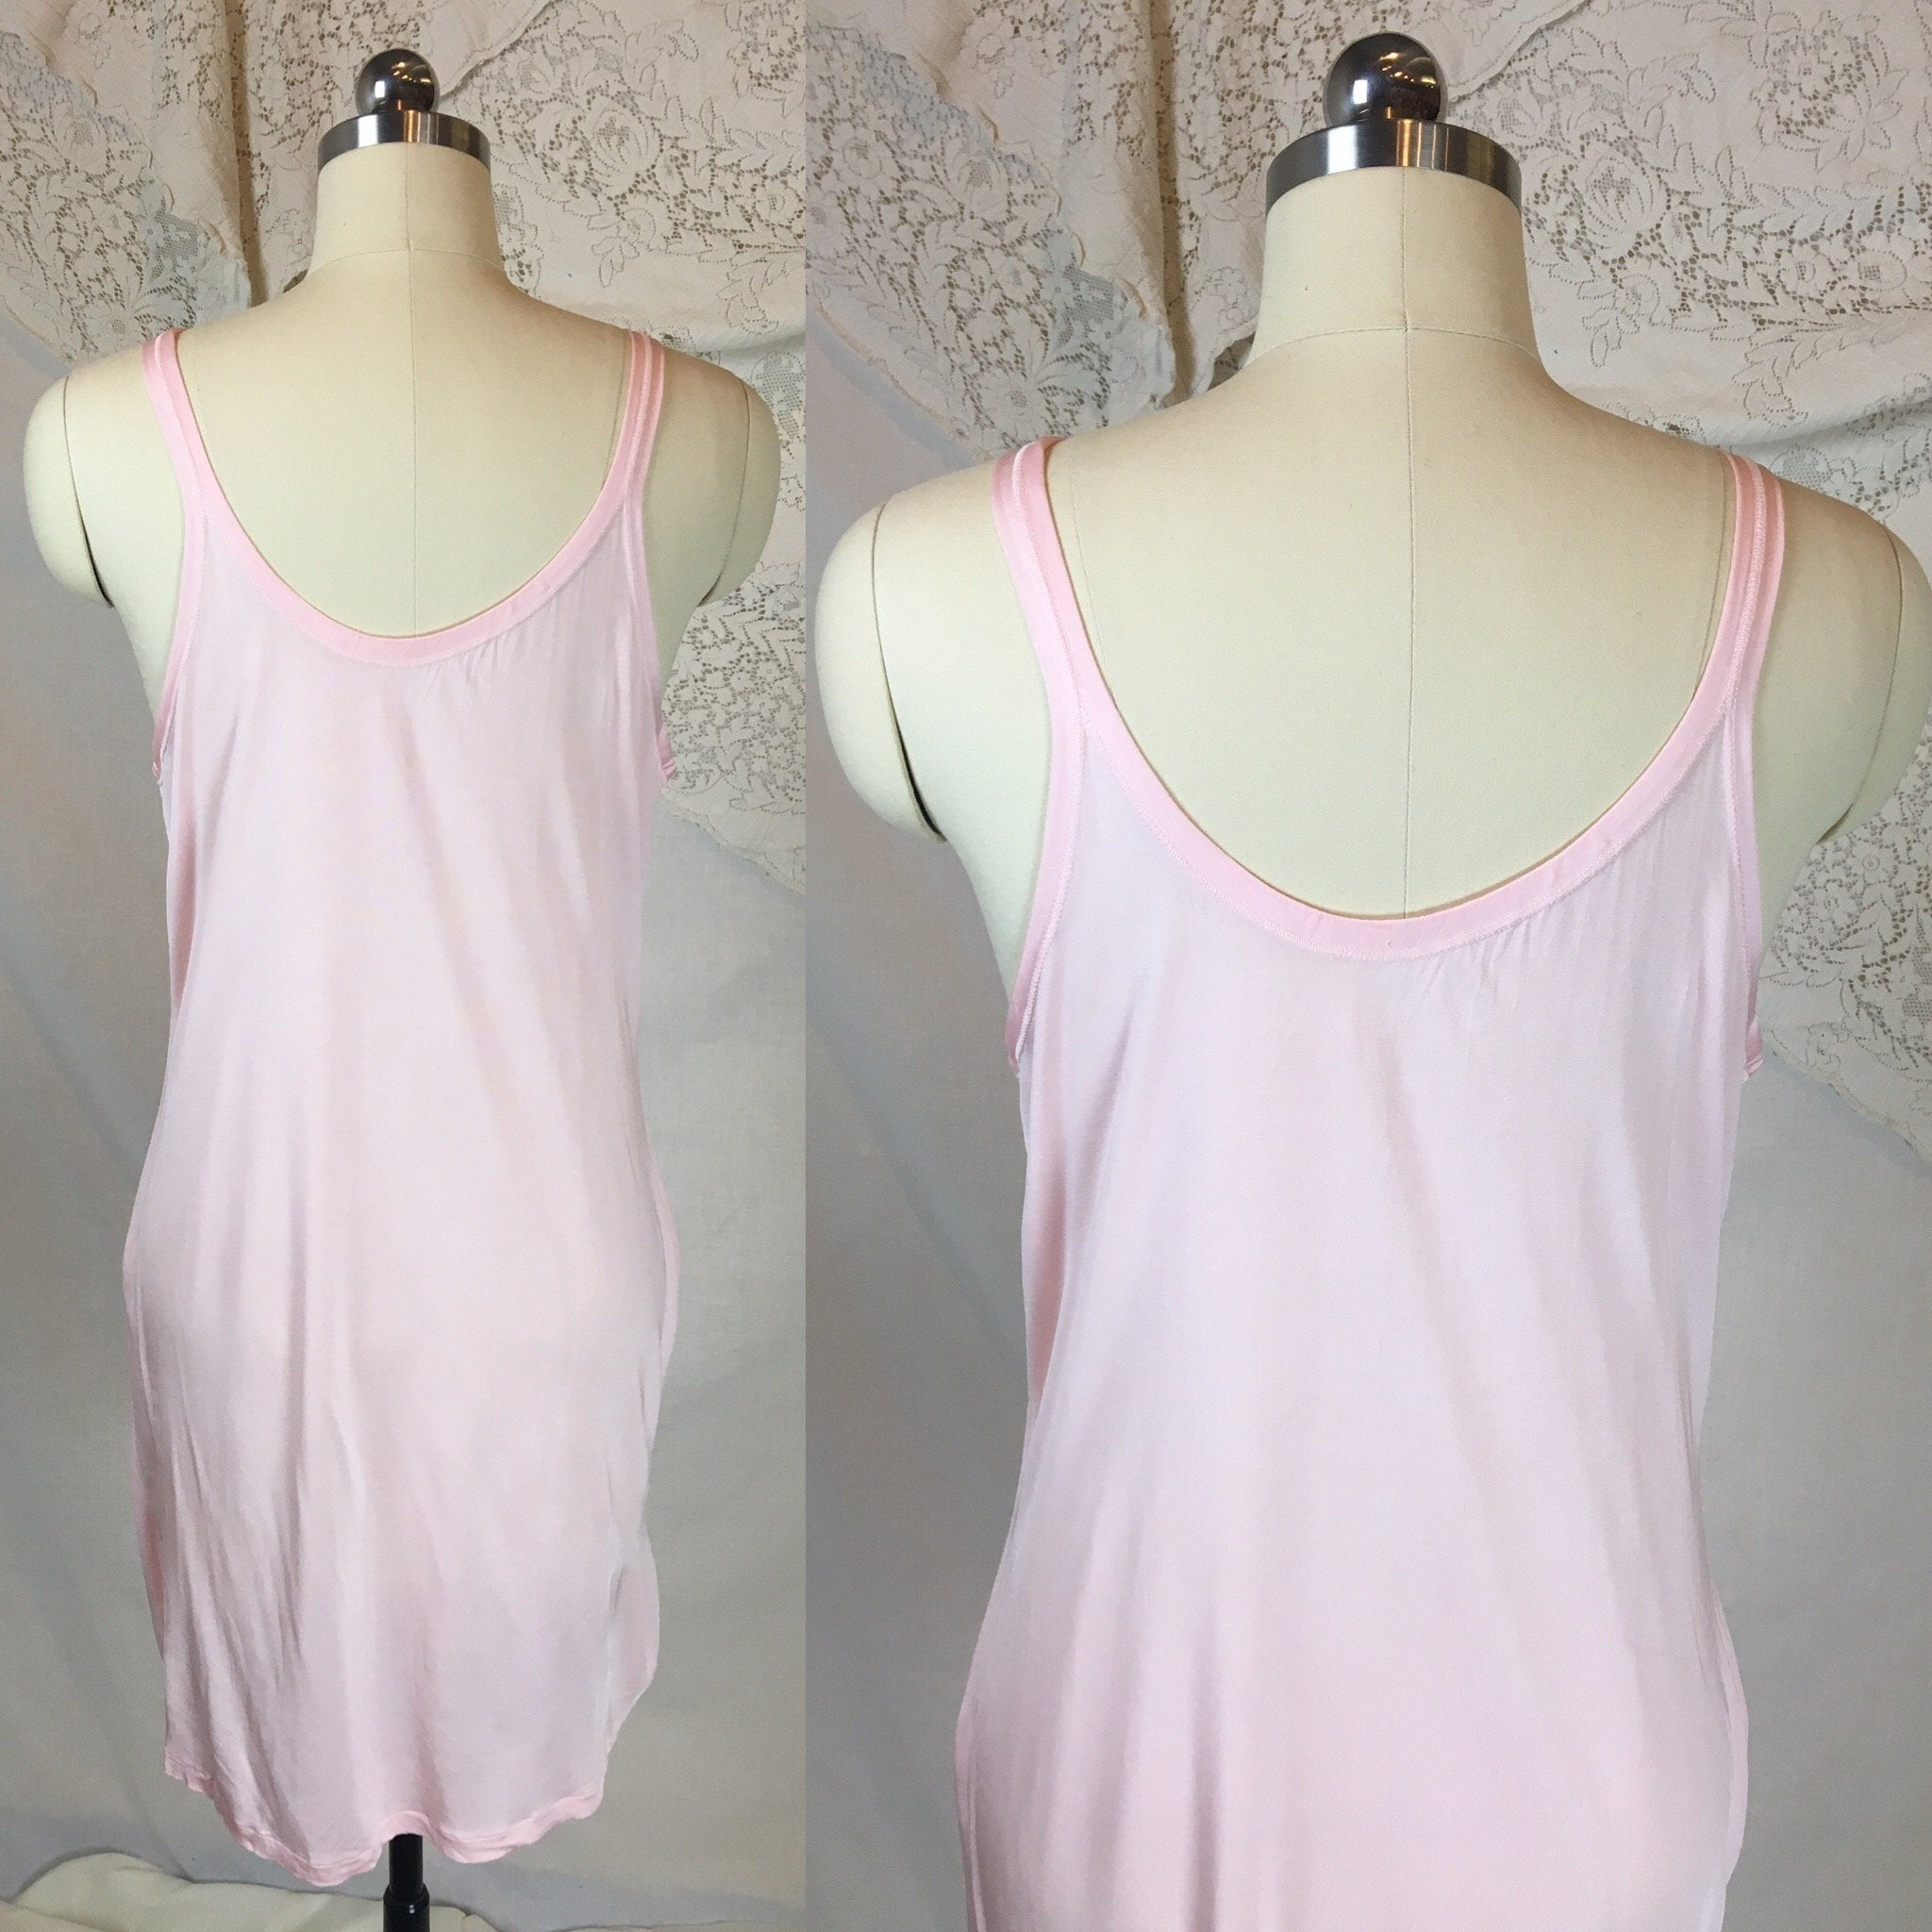 Vintage 1920's Chemise 2 | Size SM, MED | Bubblegum Pink Rayon Knit | The Globe -New with Tags - Daggers & Dames